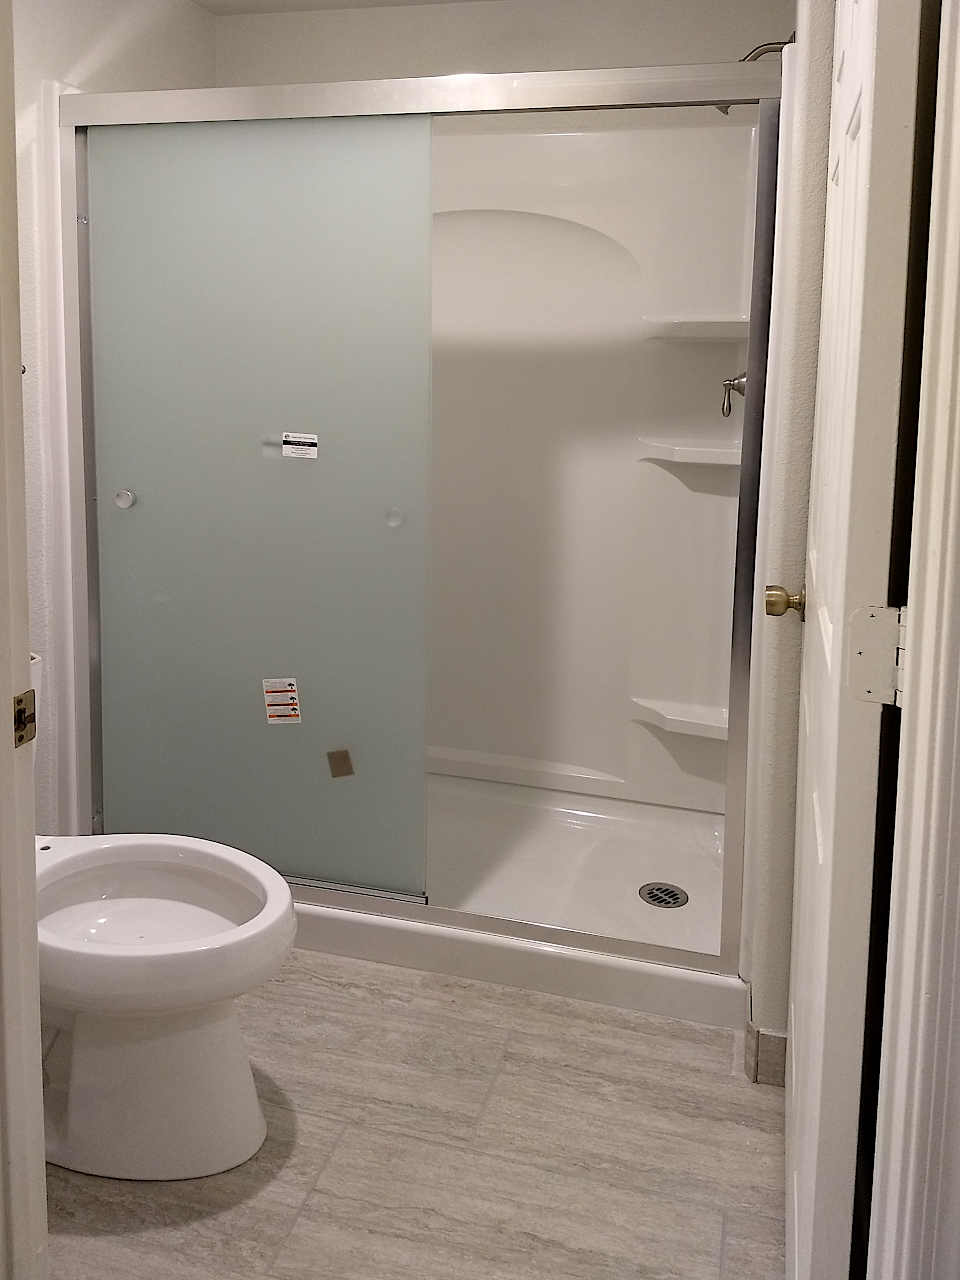 5-shower-stall-frosted-glass-1.1